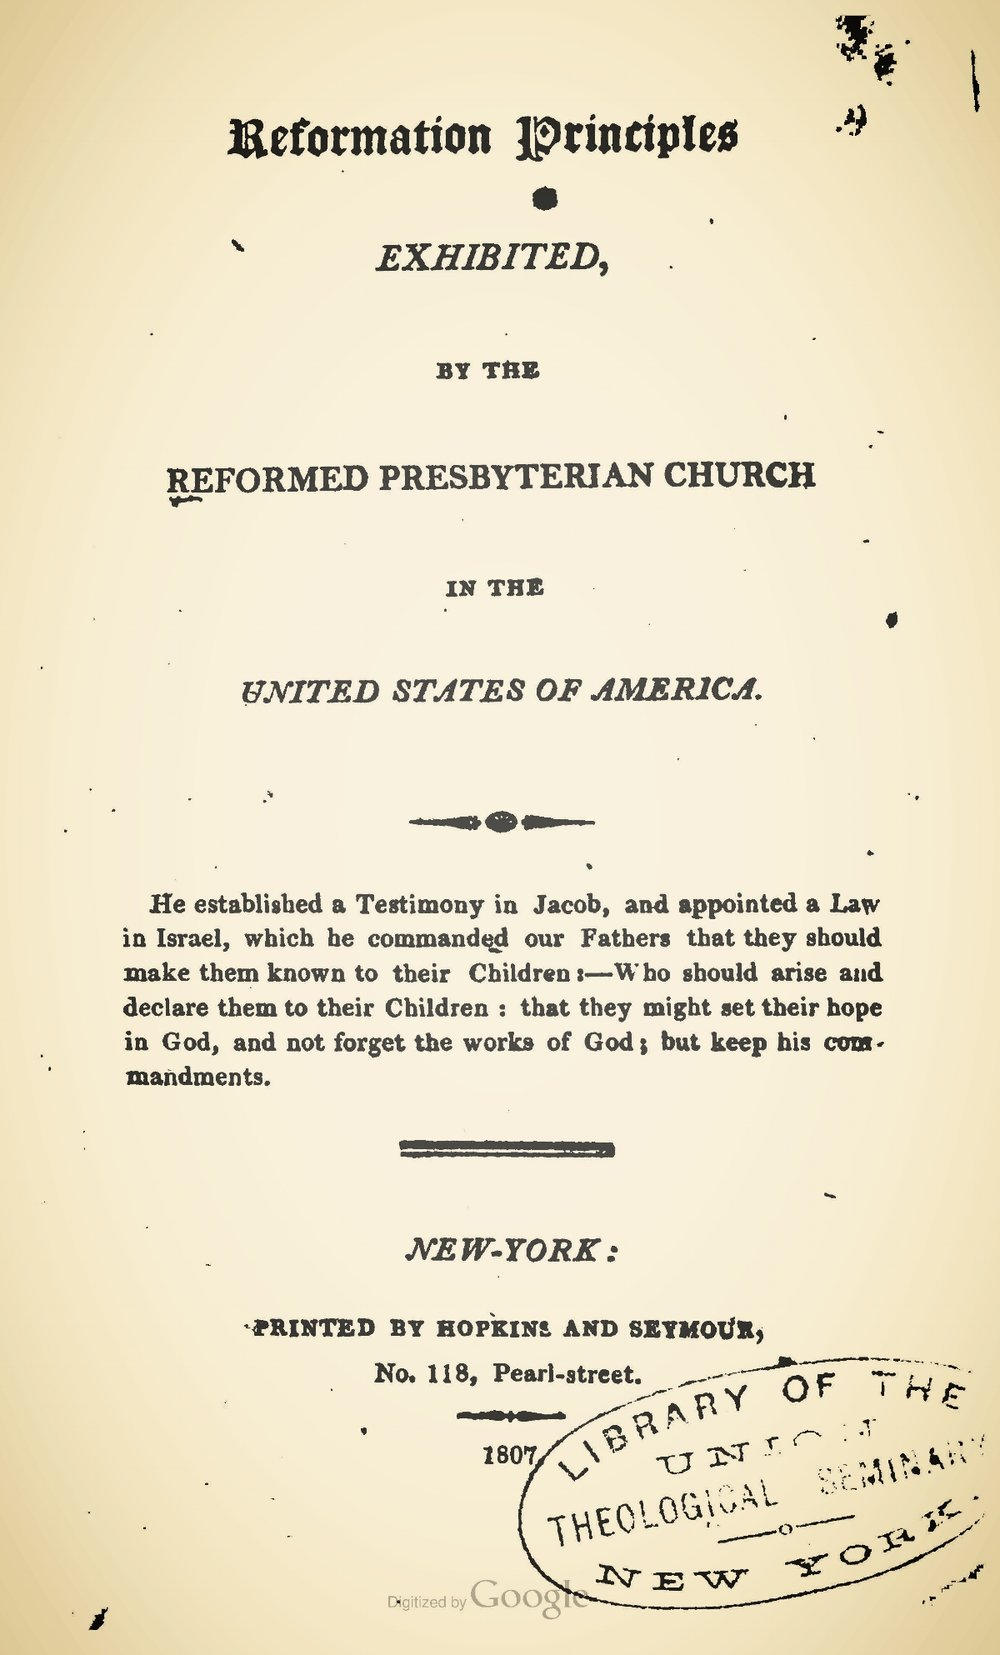 McLeod, Alexander, Reformation Principles Exhibited Title Page.jpg